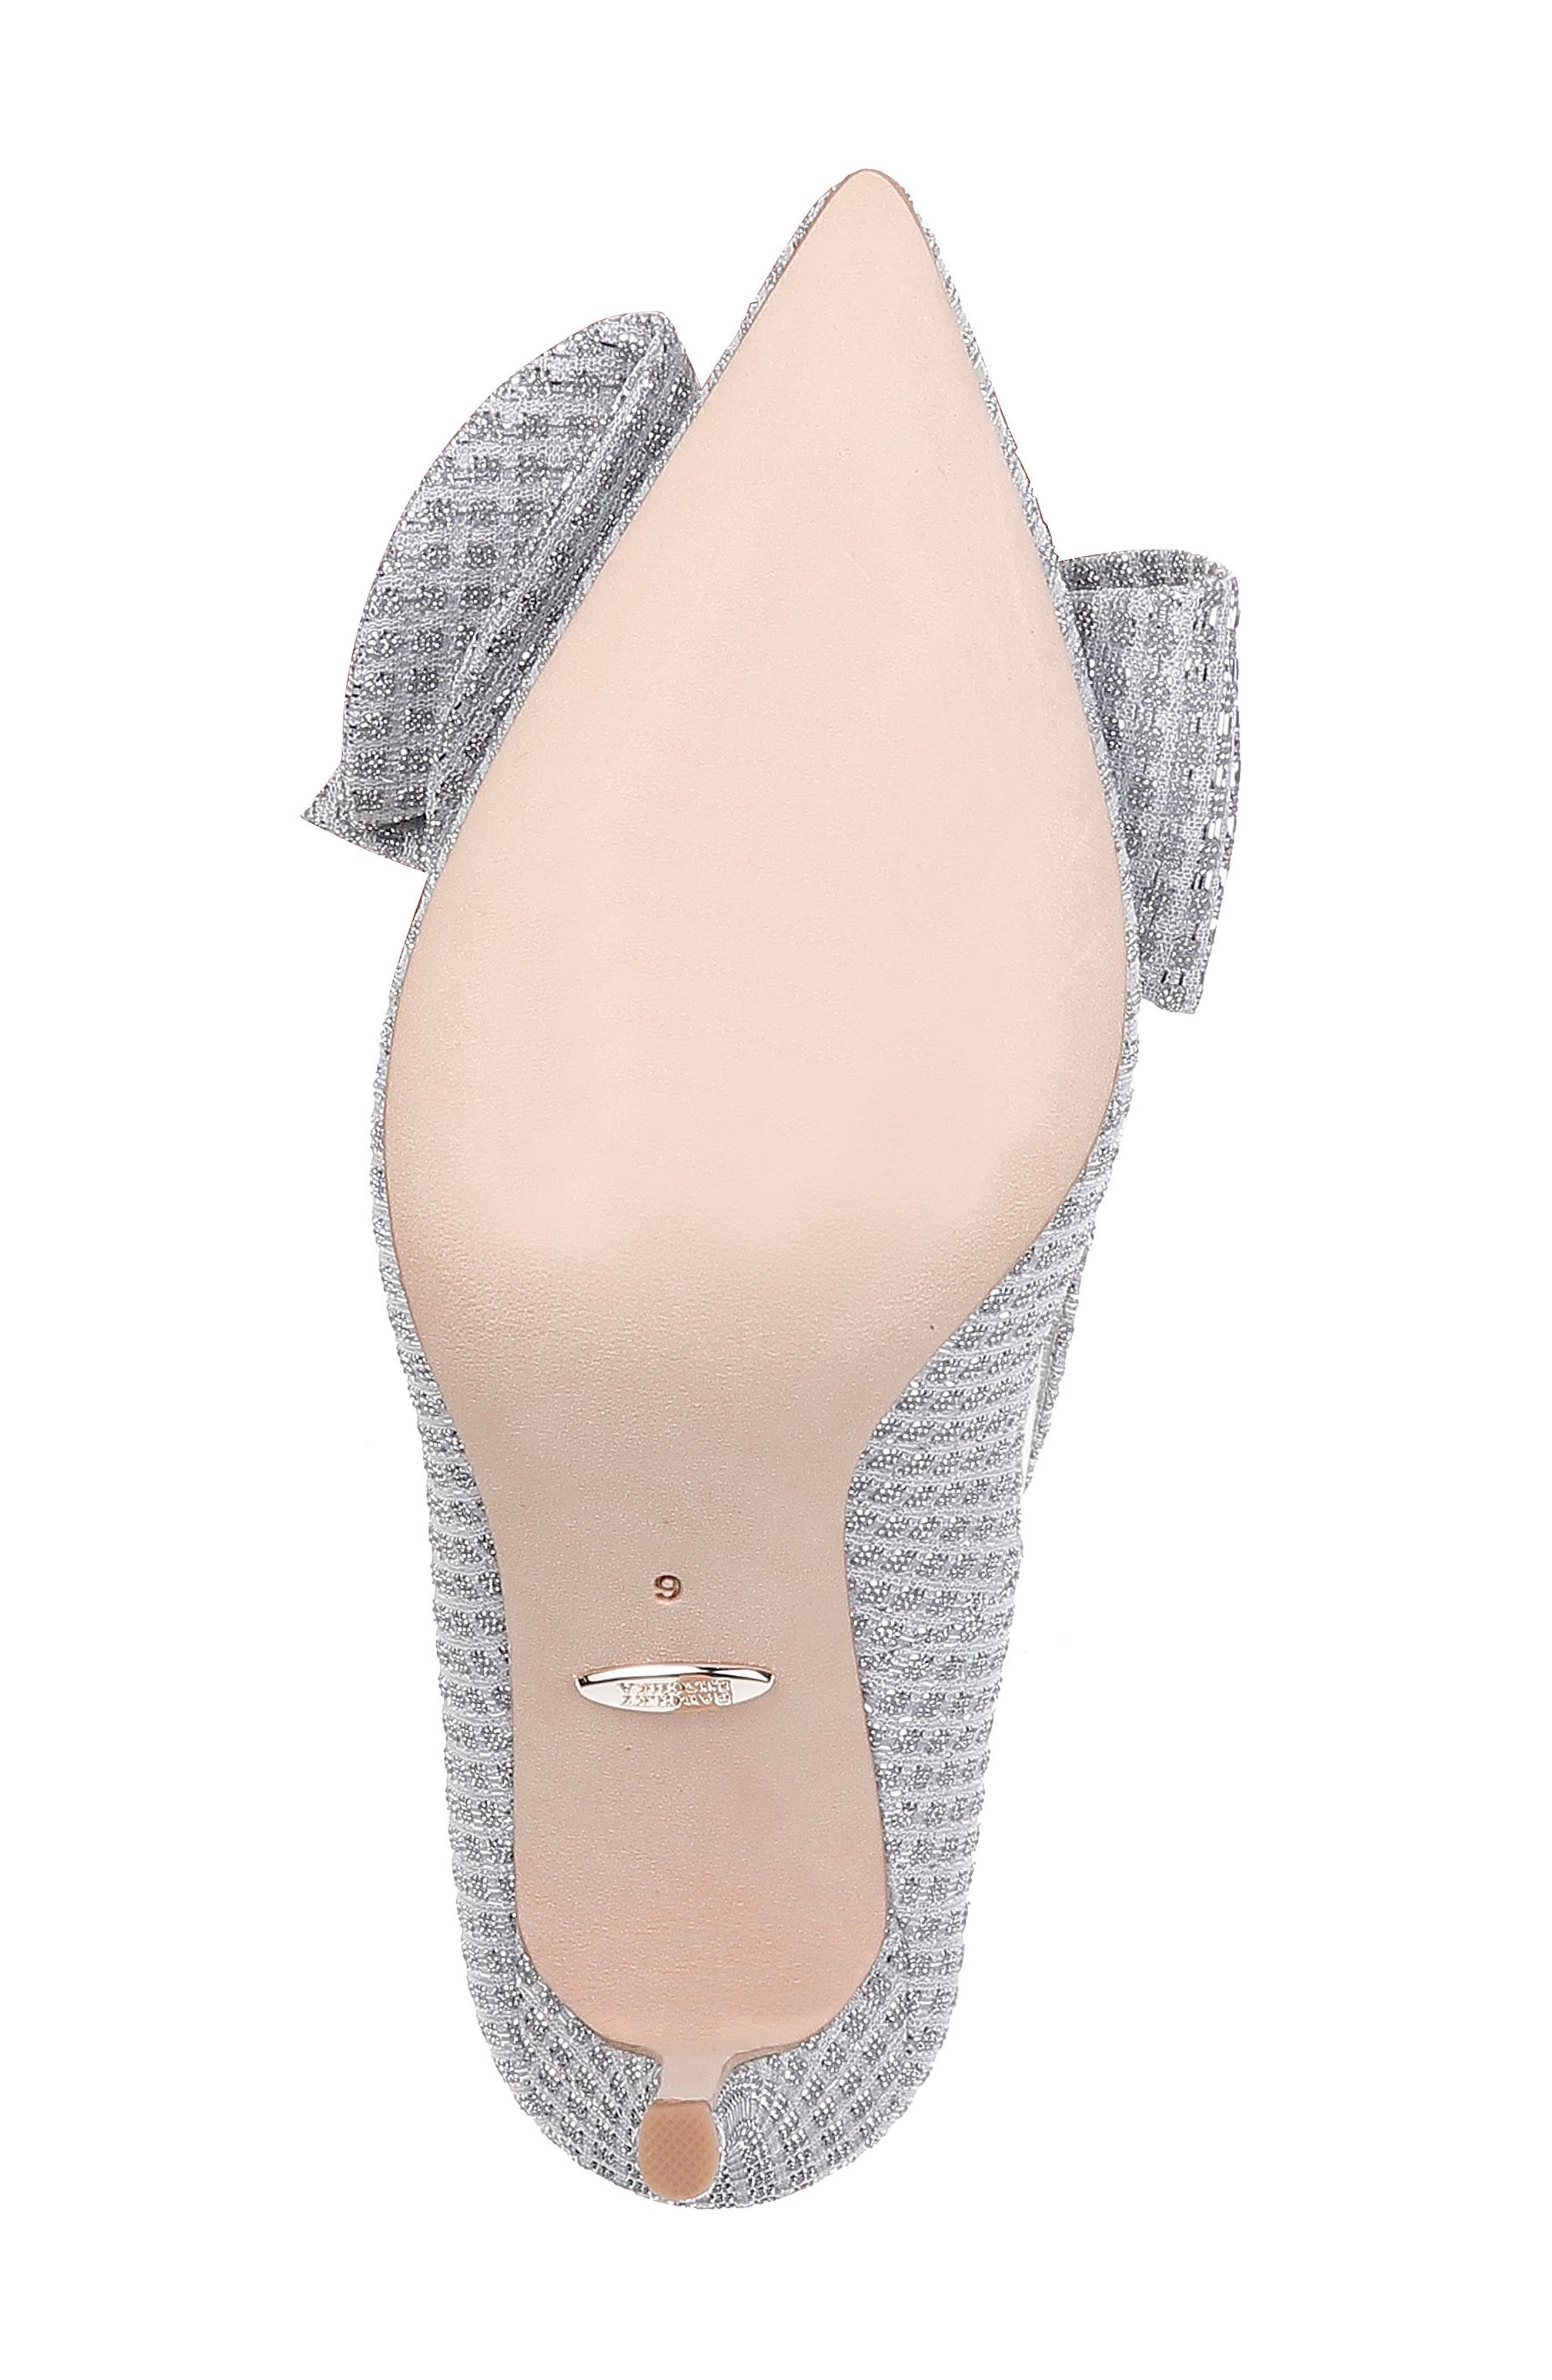 BADGLEY MISCHKA COLLECTION, Badgley Mischka Frances Bow Pump, Alternate thumbnail 6, color, SILVER GLITTER FABRIC